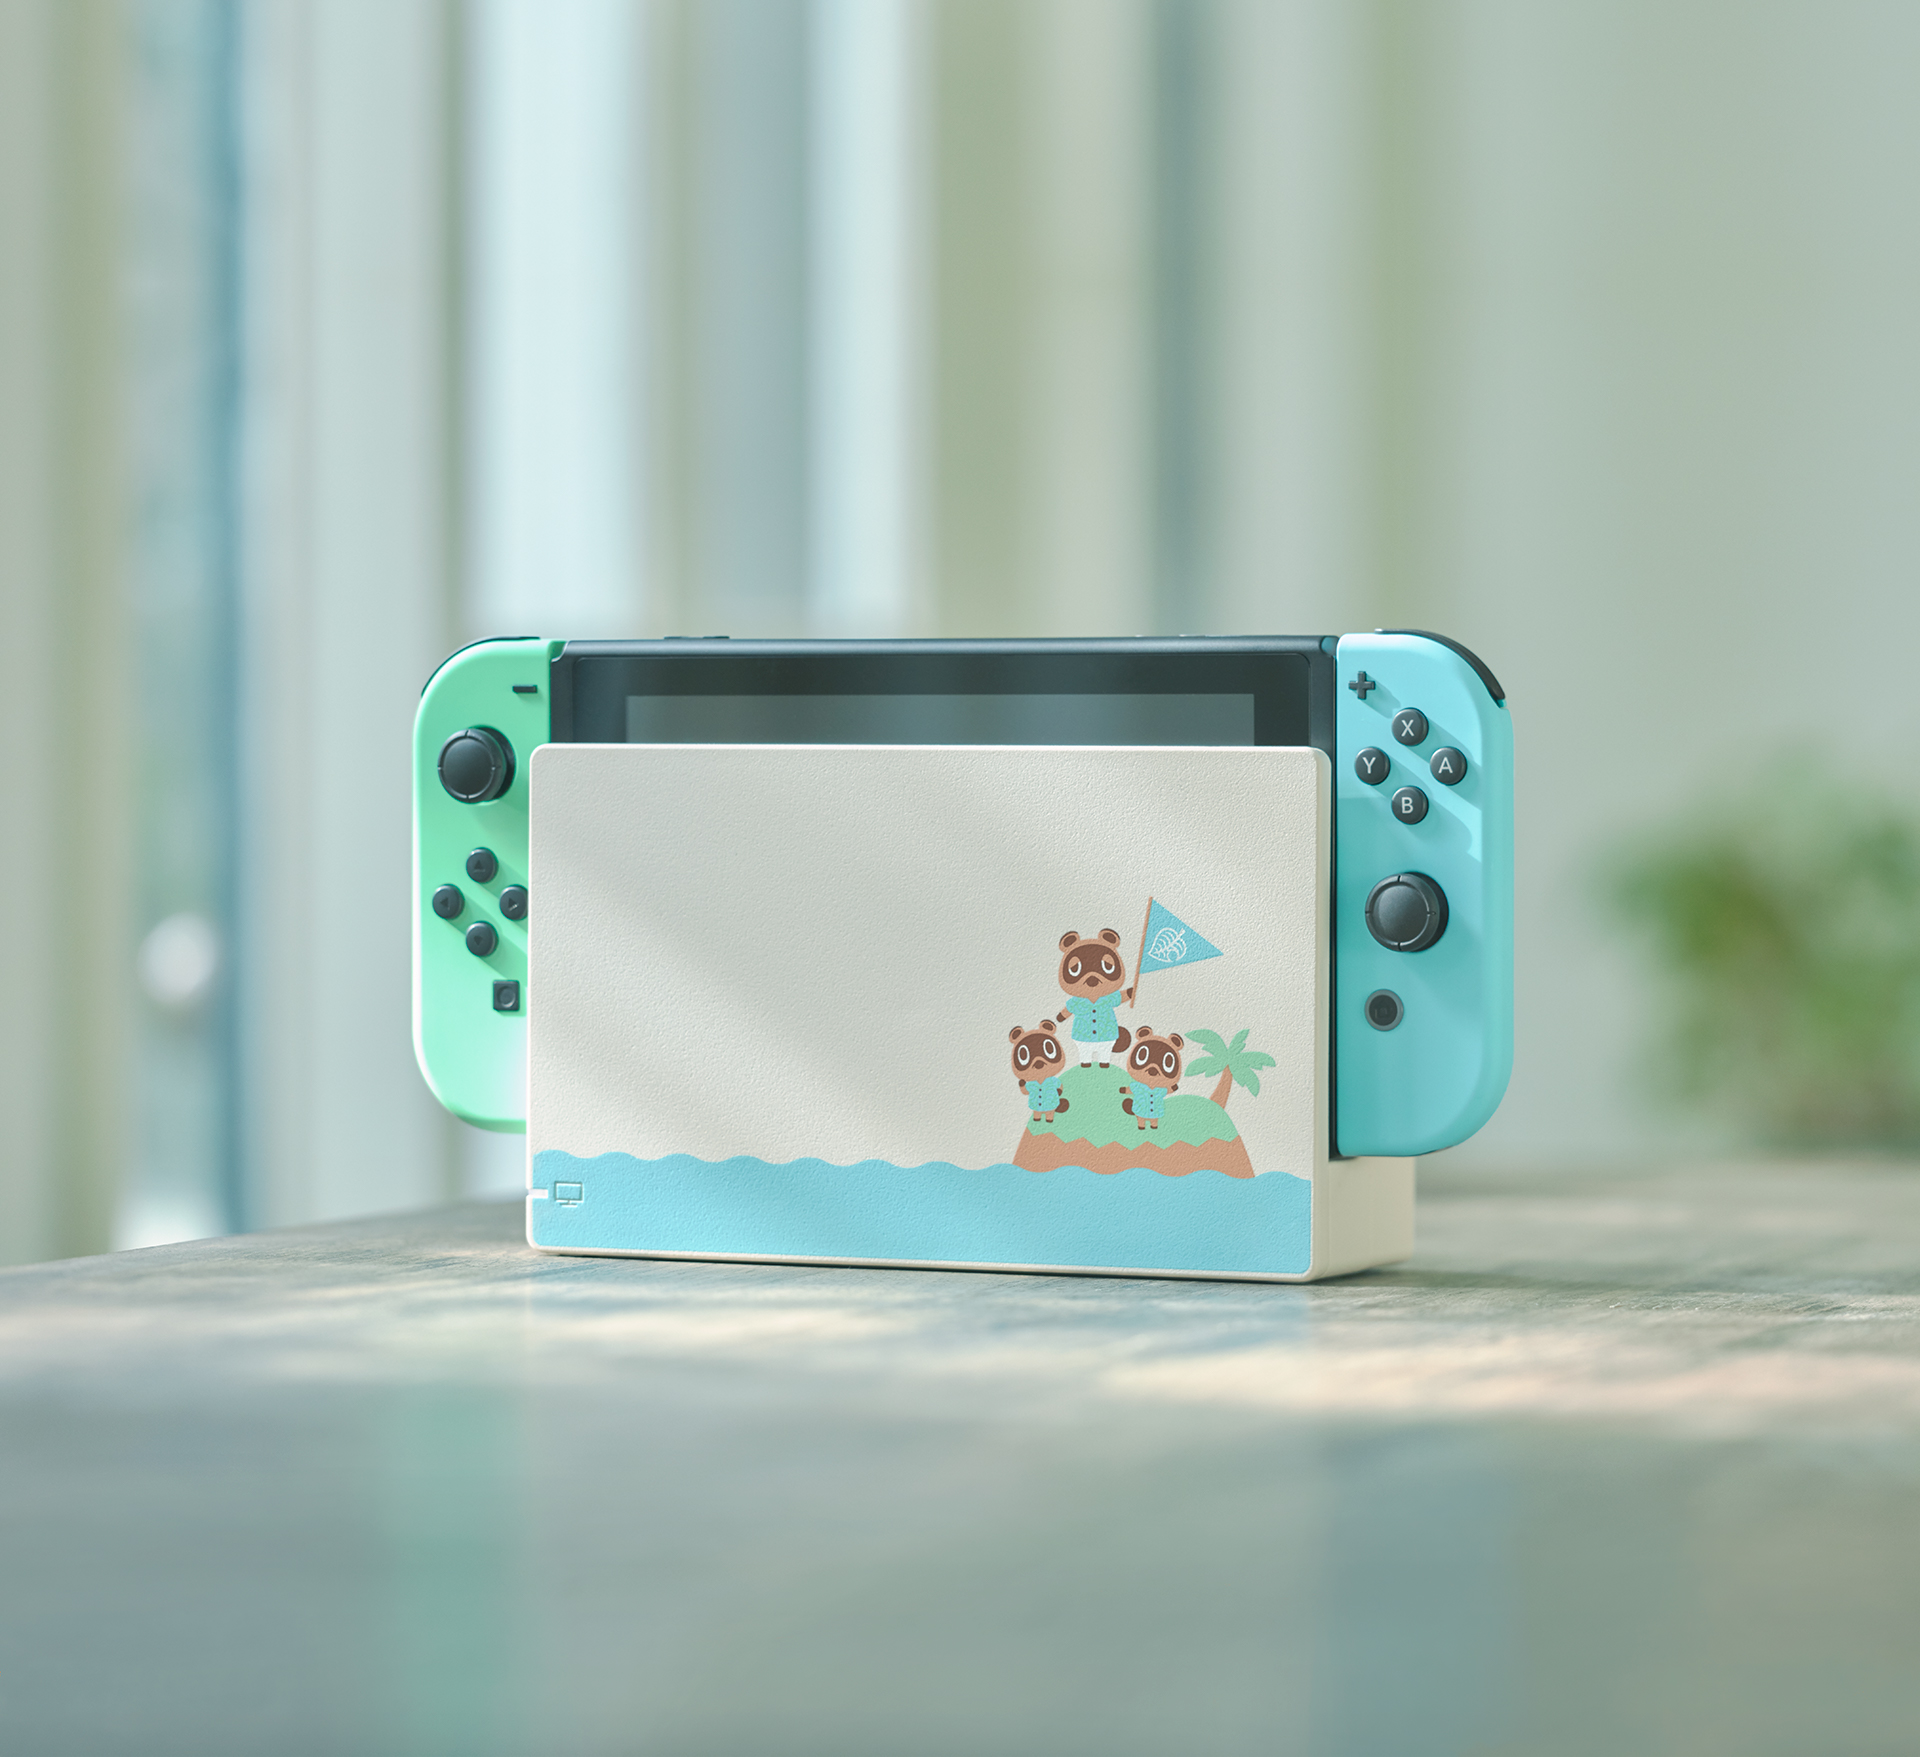 Photo of the Animal Crossing: New Horizons Nintendo Switch hardware in its dock